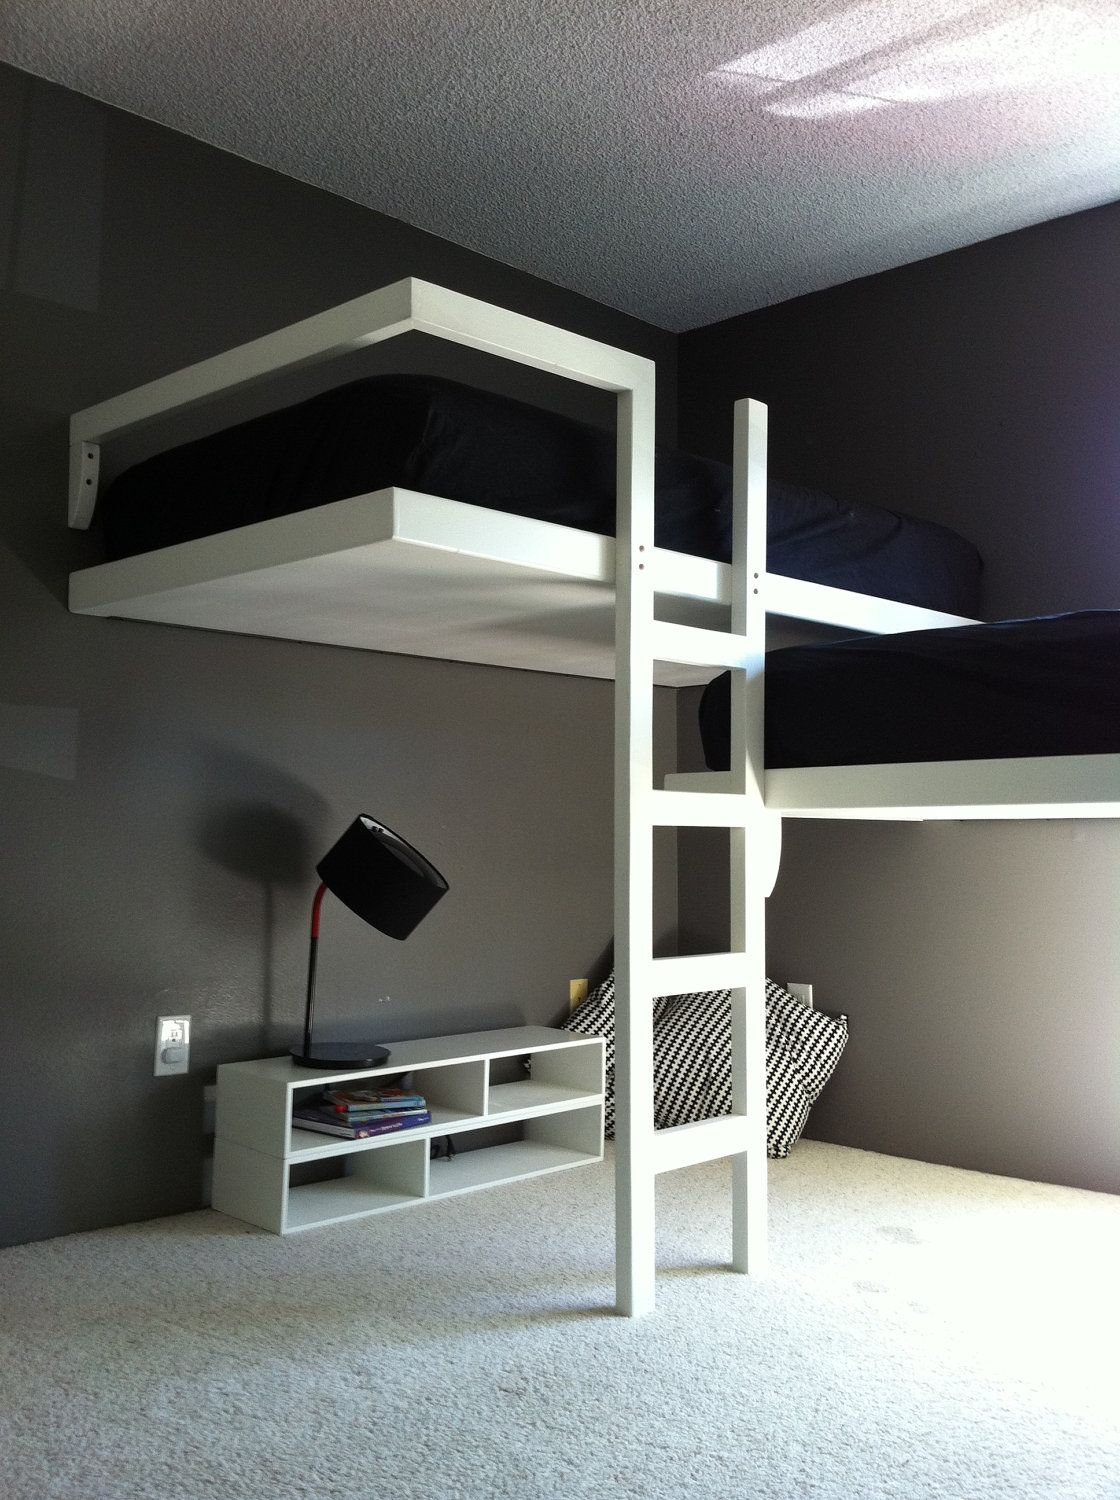 Loft bed twin over queen  Awesome loft beds  Jiellas altes Zimmer  Pinterest  Lofts Queen